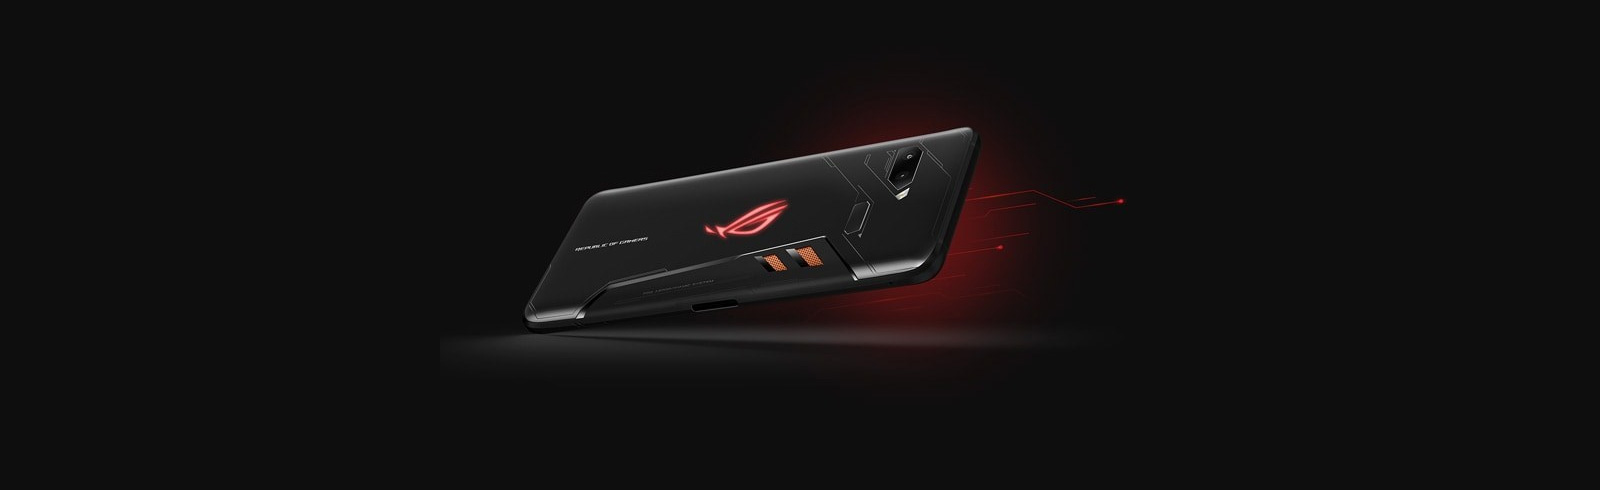 Asus will launch the second generation ROG gaming smartphone in Q3 of 2019